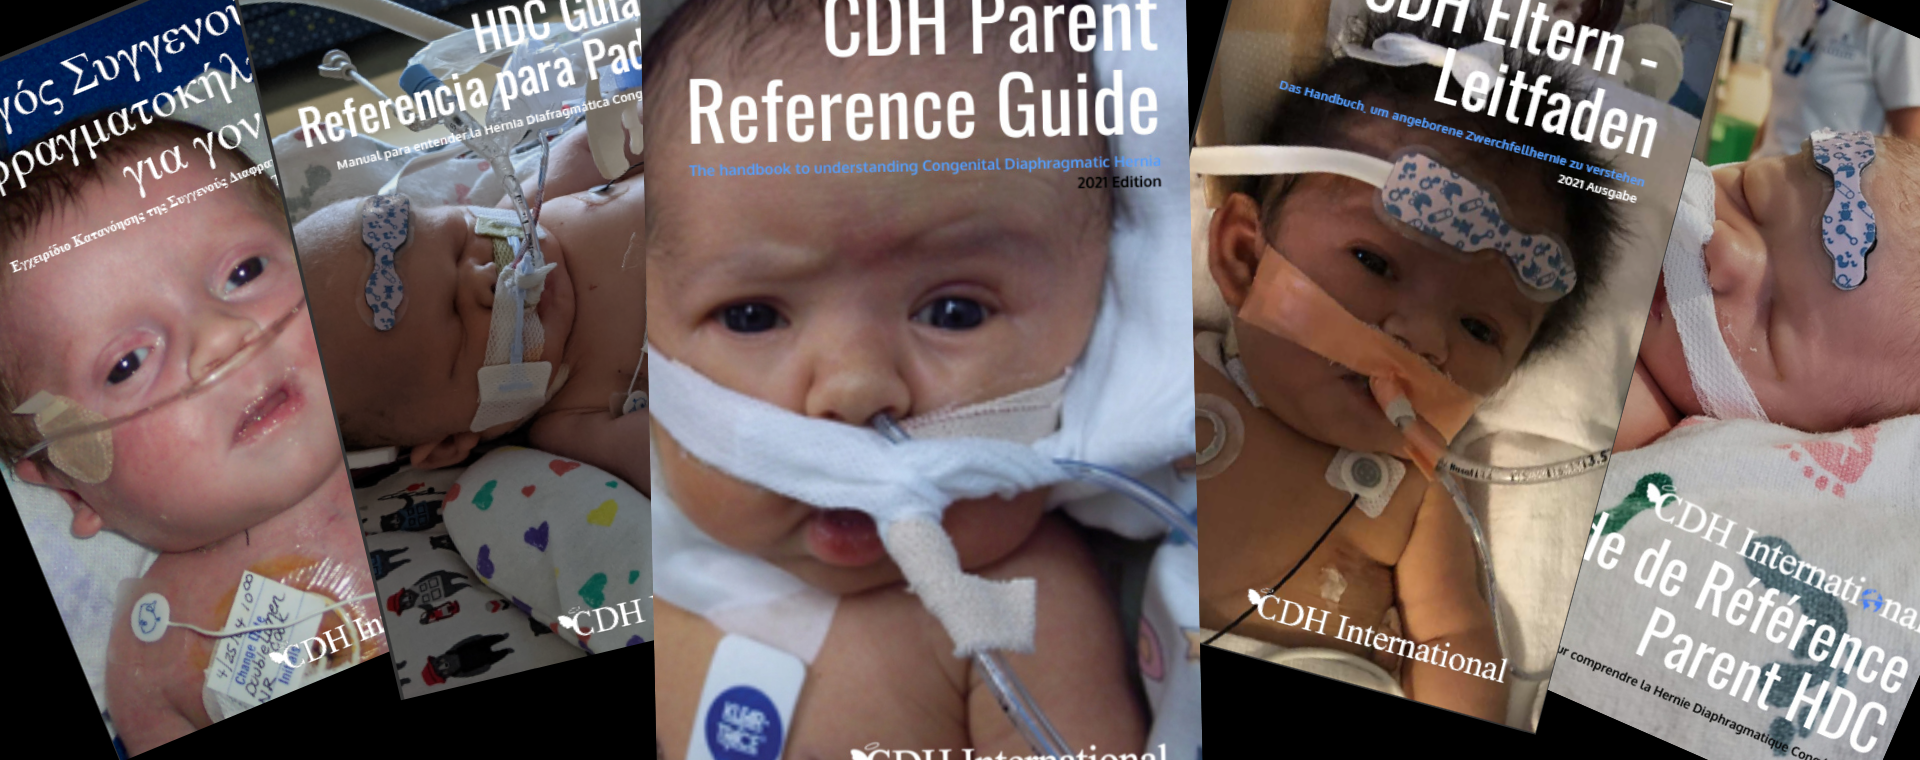 CDH Parent Reference Guide